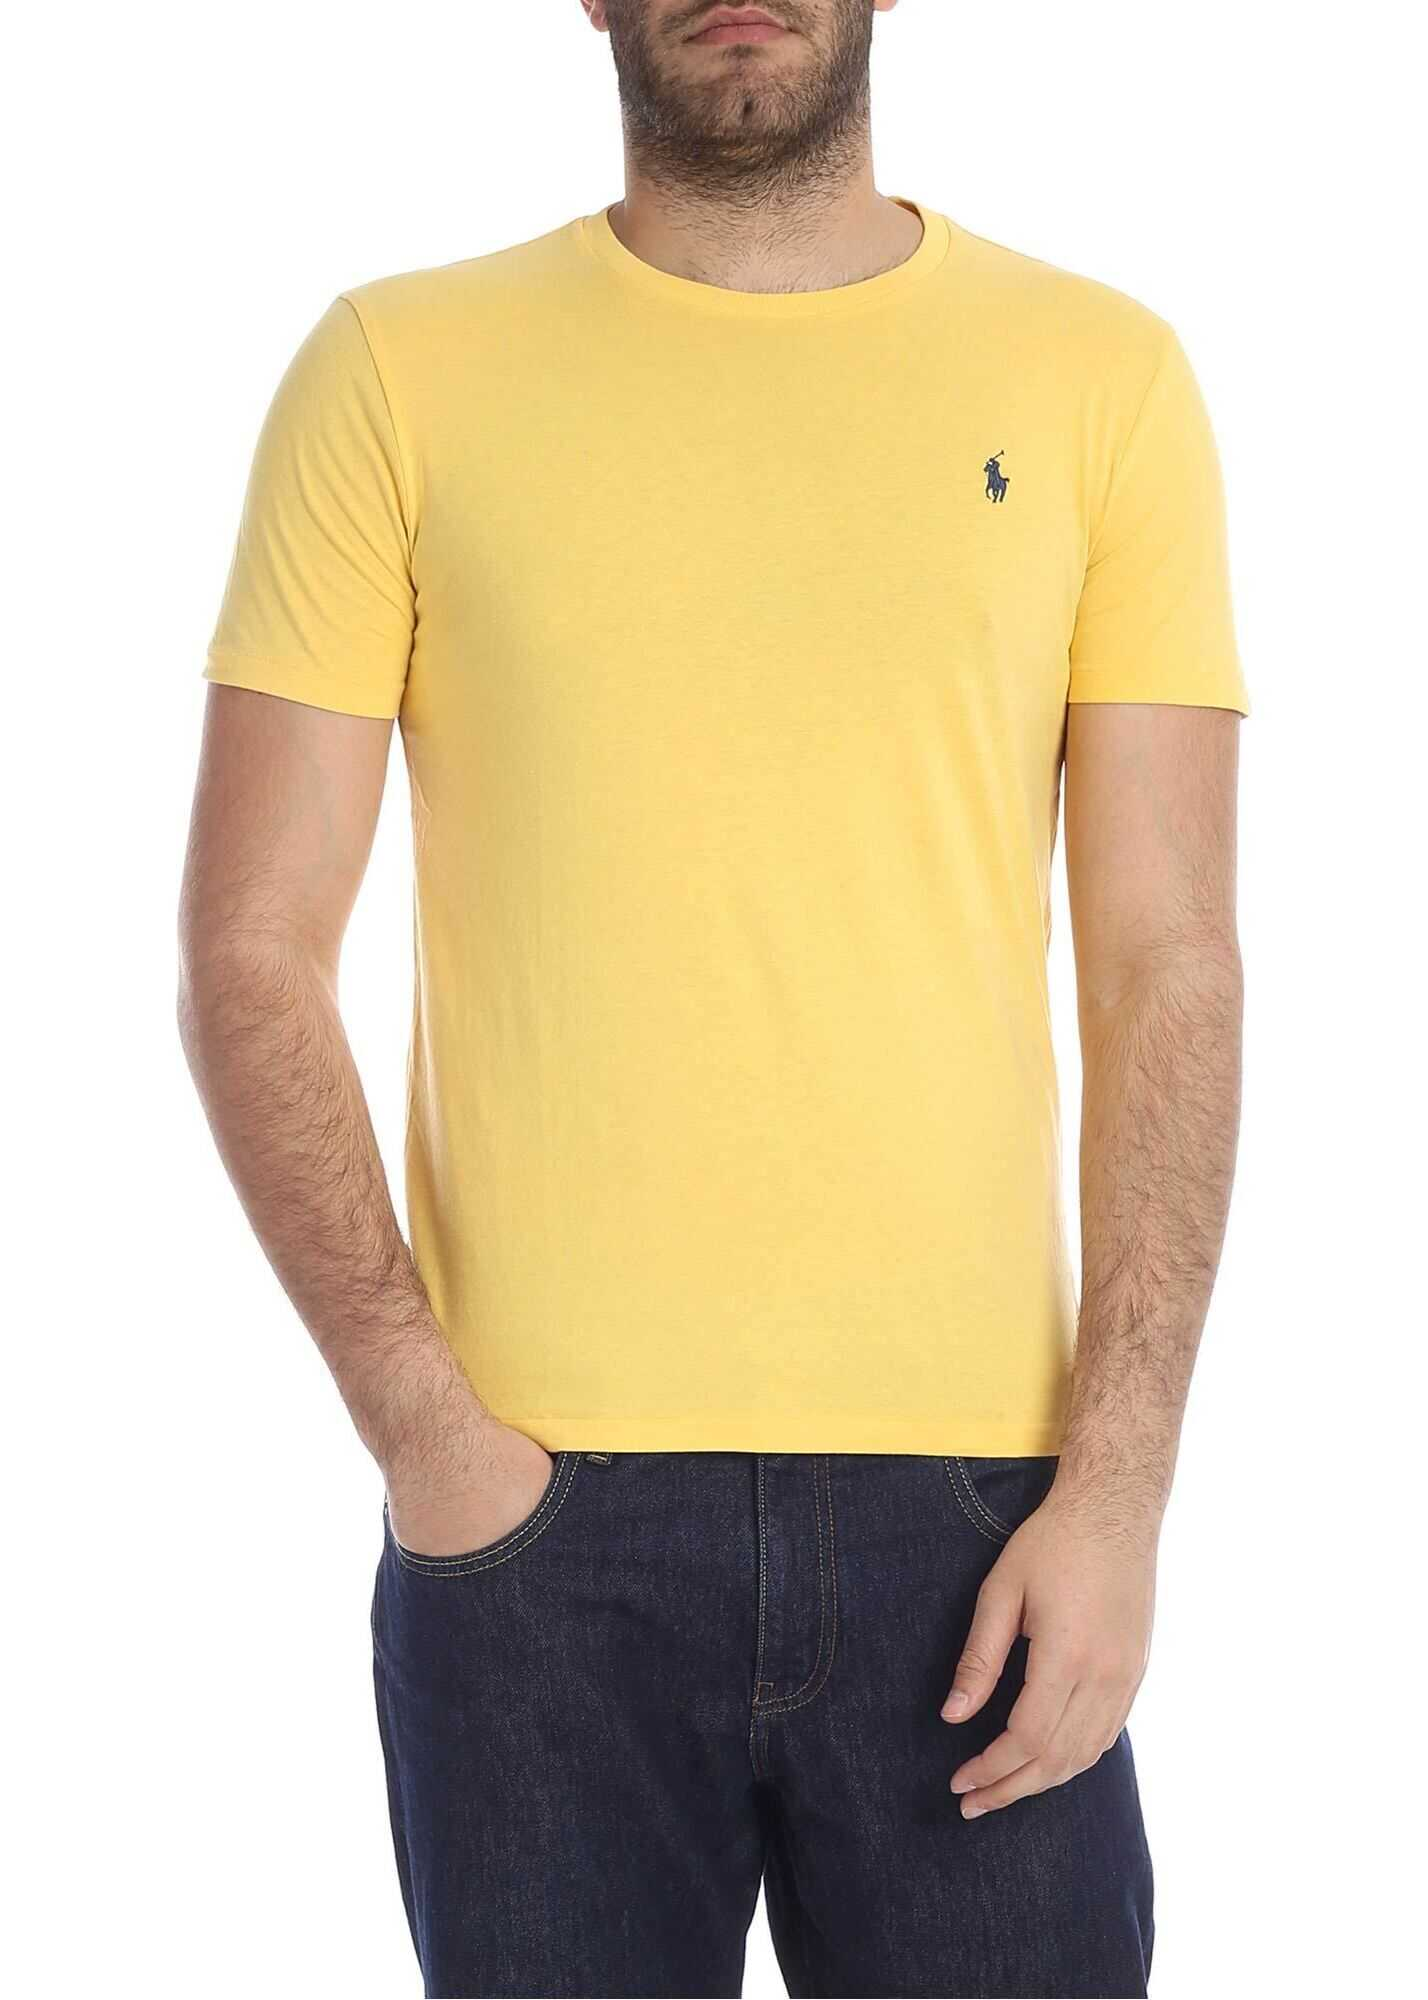 T-Shirt In Yellow With Blue Logo Embroidery